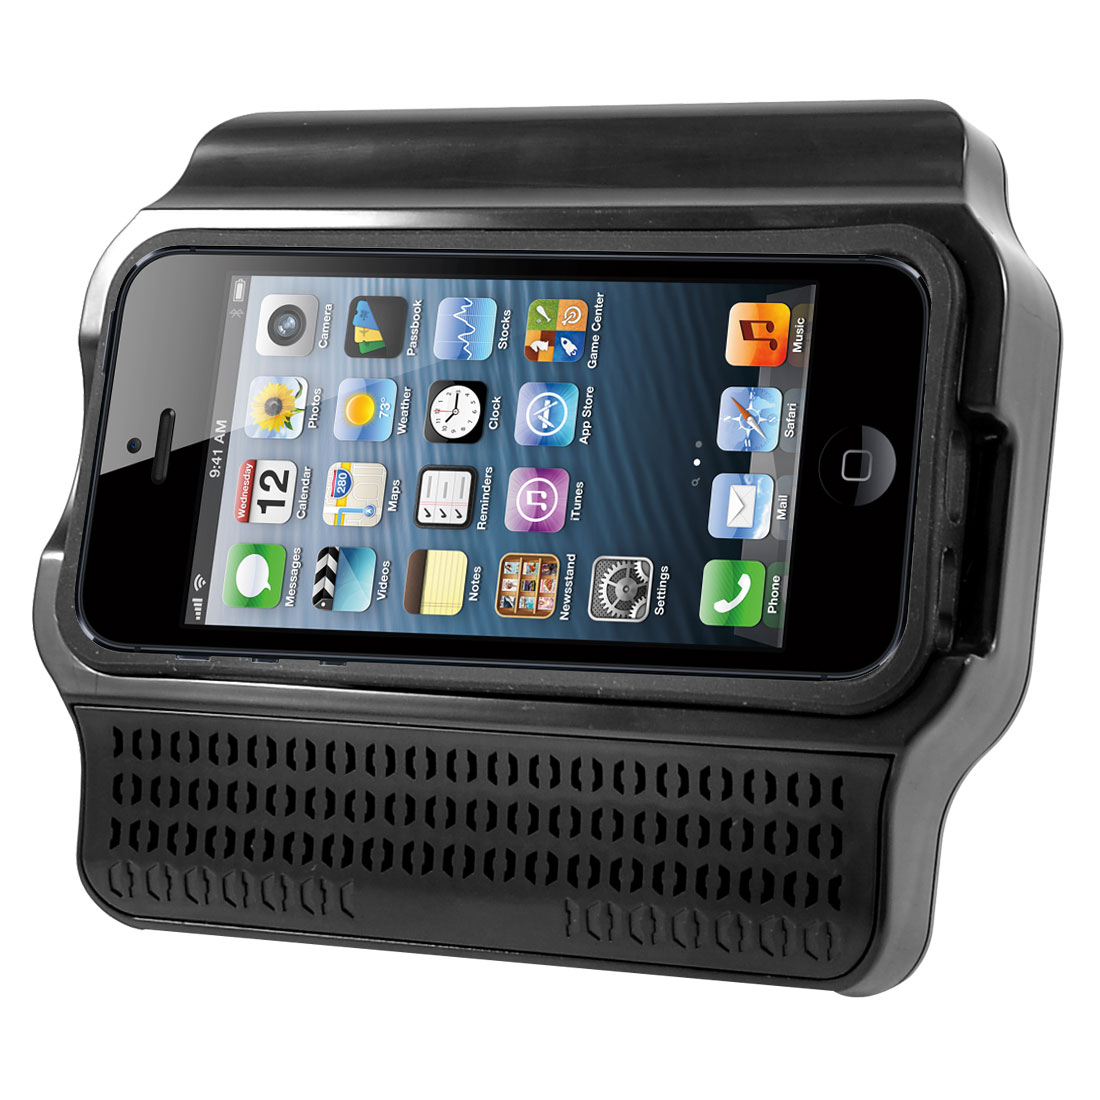 Plastic Stand Amplifier Holder Silicone Case Cover Black for iPhone 5 5th